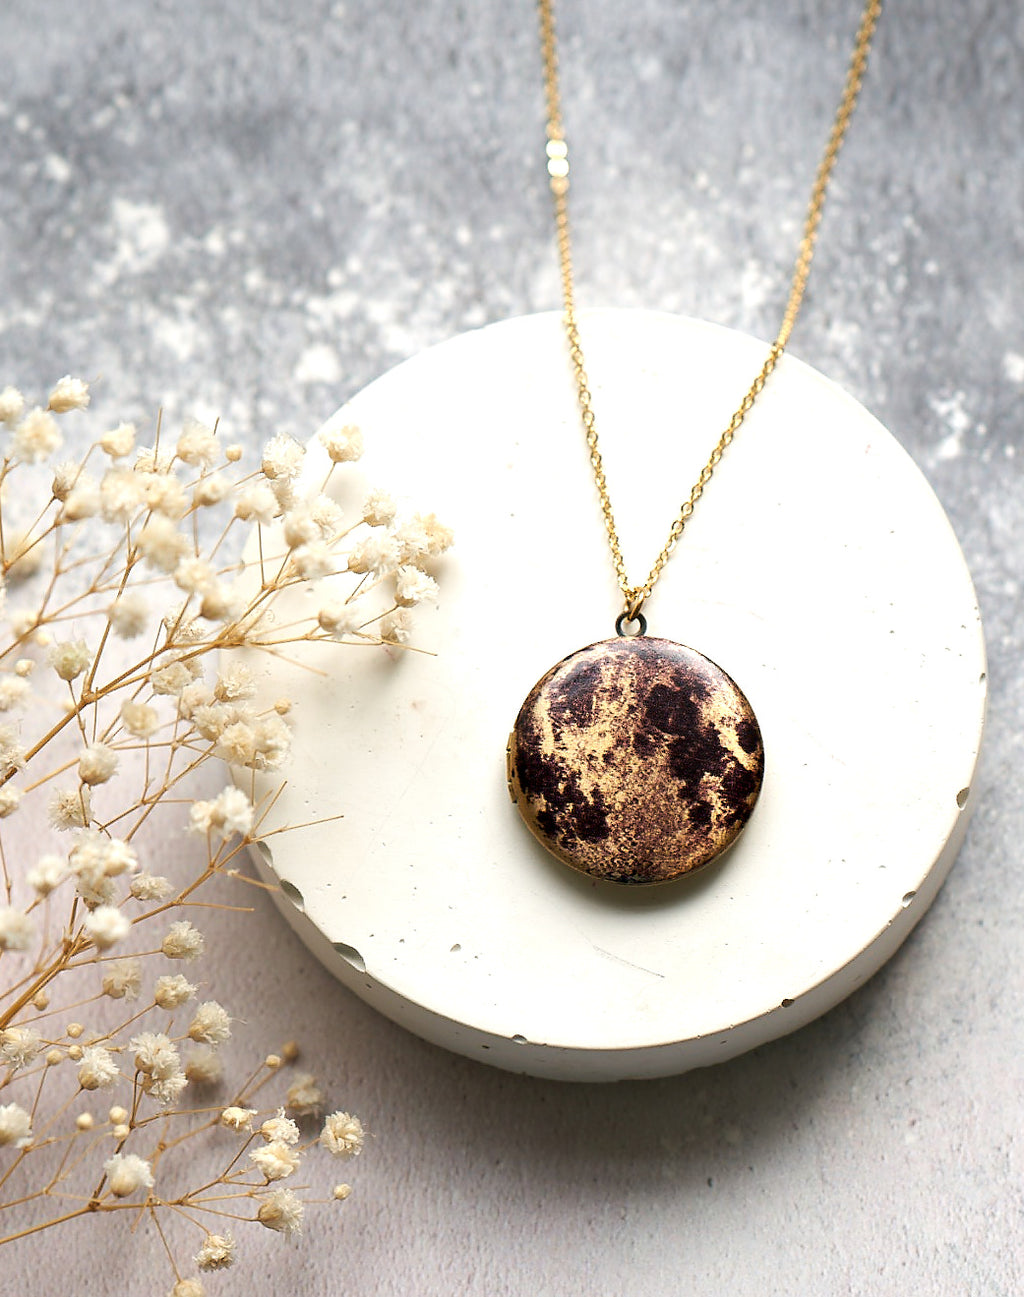 SECONDS - Over This Moon Locket